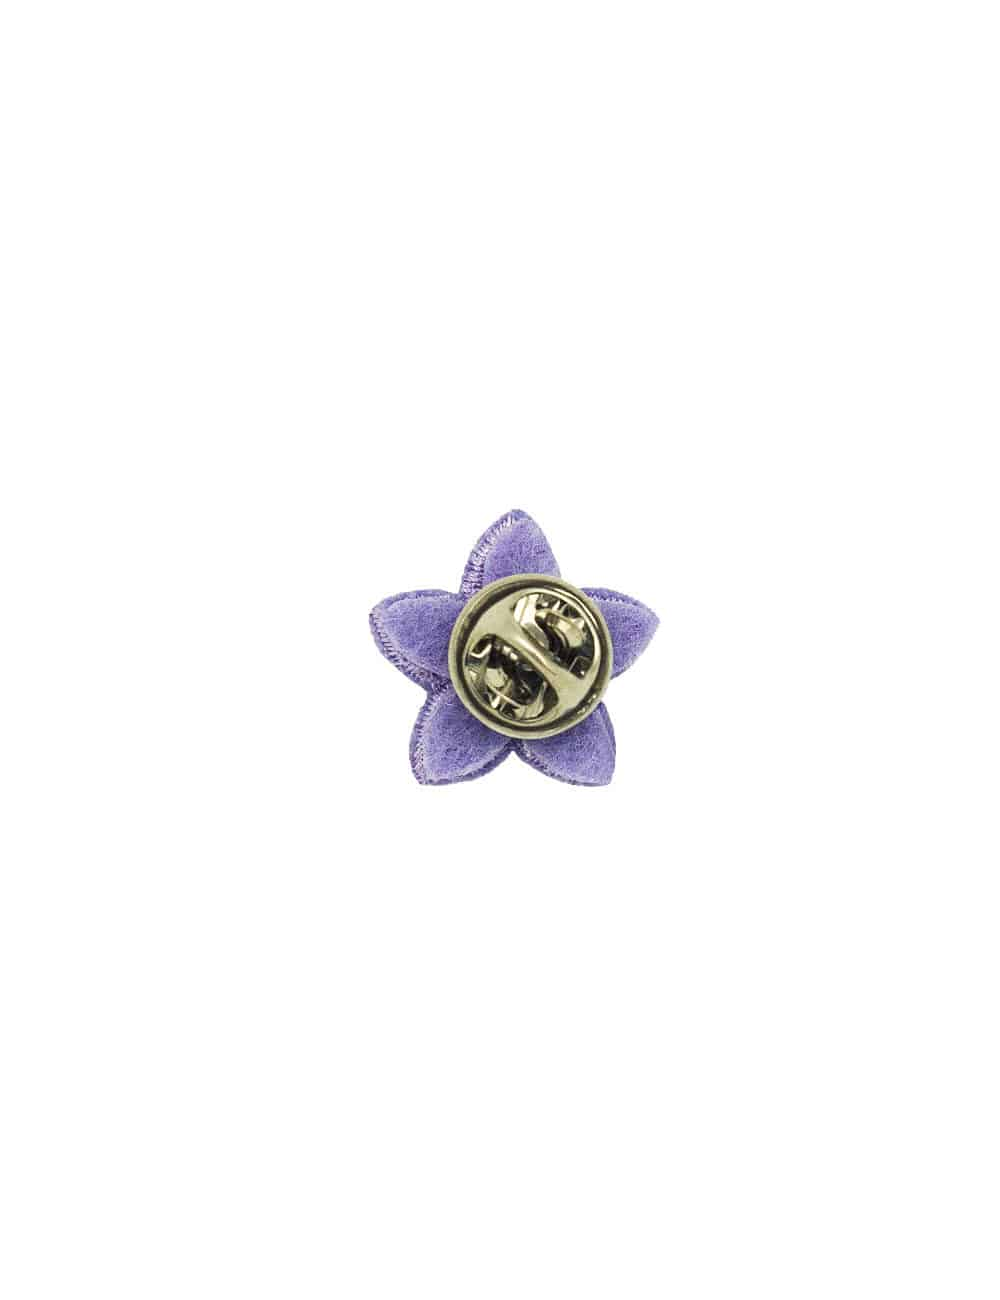 Lilac with White Floral Lapel Pin LP14.10